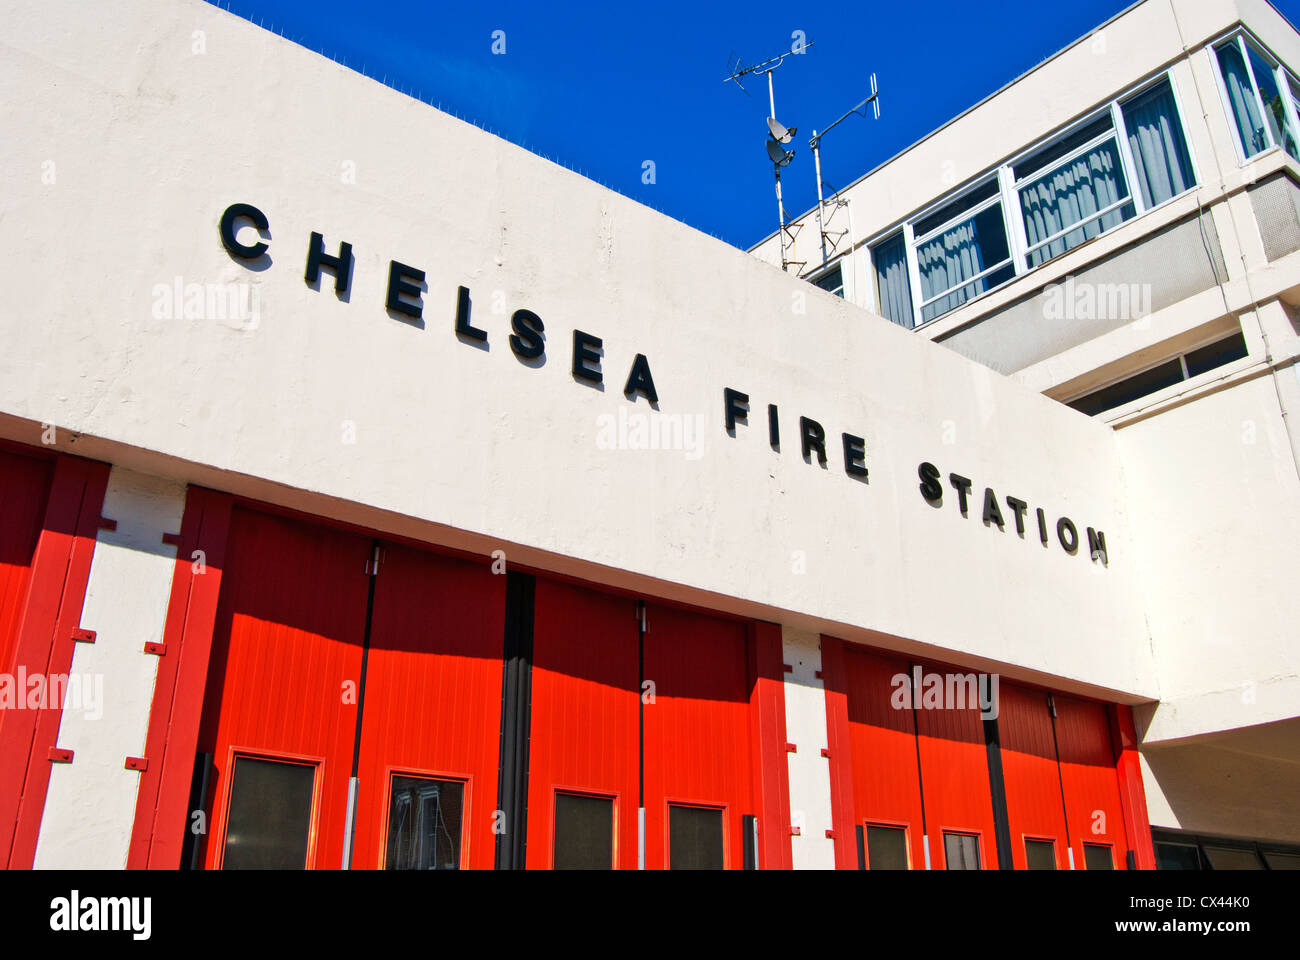 Chelsea Fire Station London - Stock Image